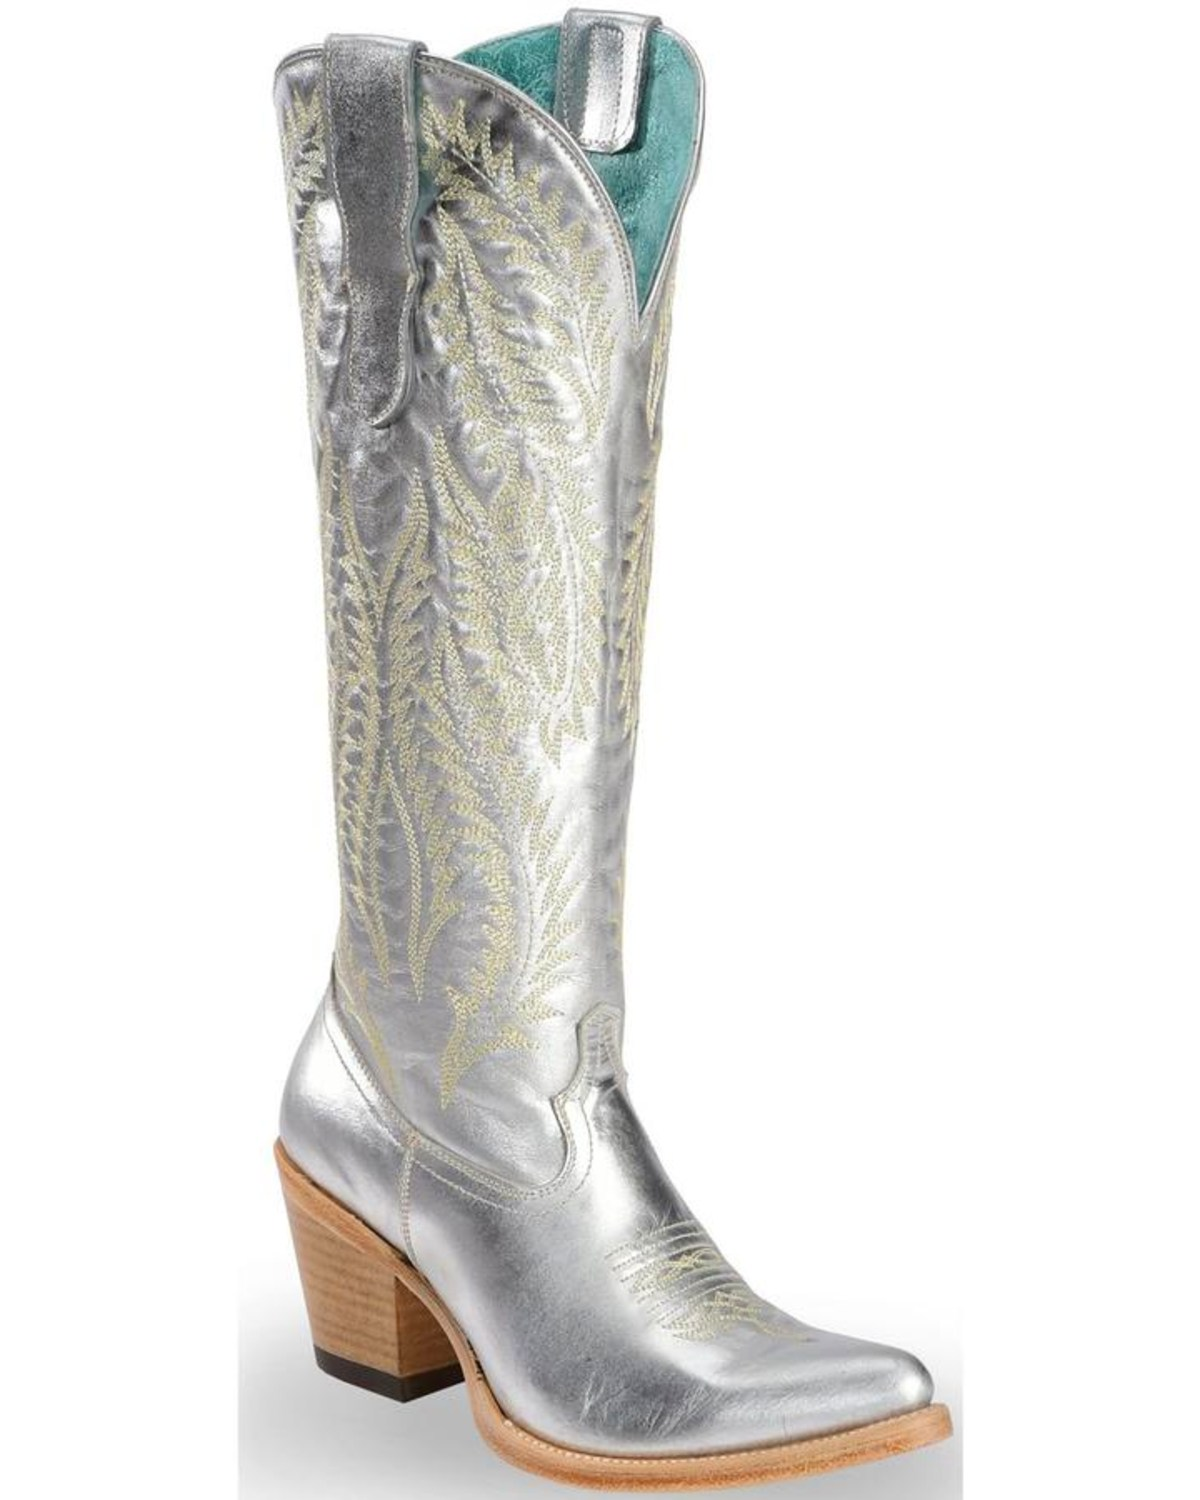 907fdc75 Zoomed Image Corral Women's Silver Embroidery Tall Top Cowgirl Boots -  Pointed Toe, Silver, hi-